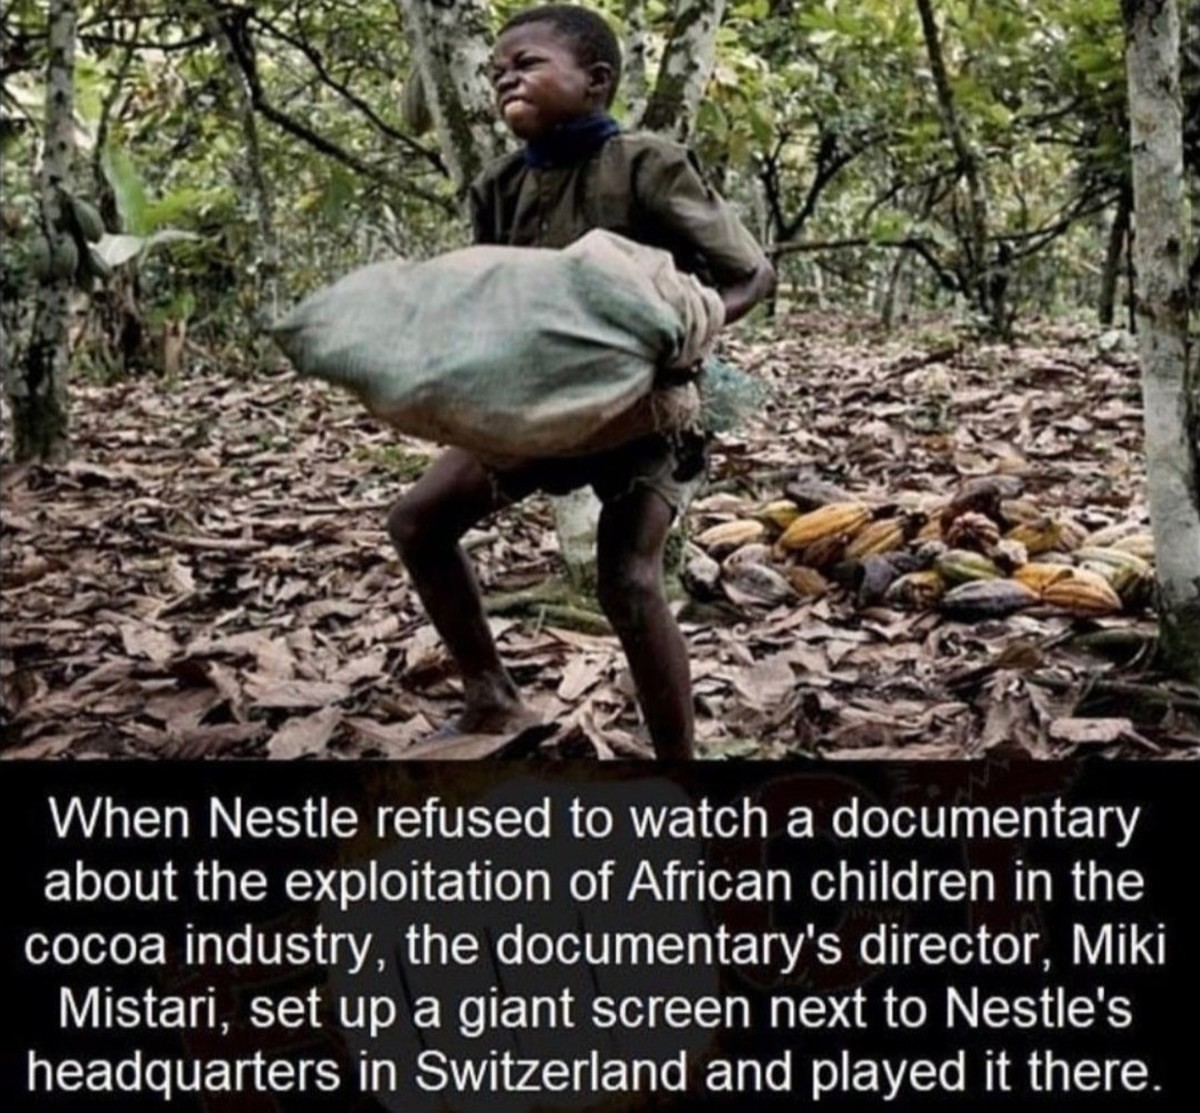 staking Dunlin. .. Nestle executives laughing as they get to watch African children struggle while they eat chocolate and drink their tasting water Comment edited at .